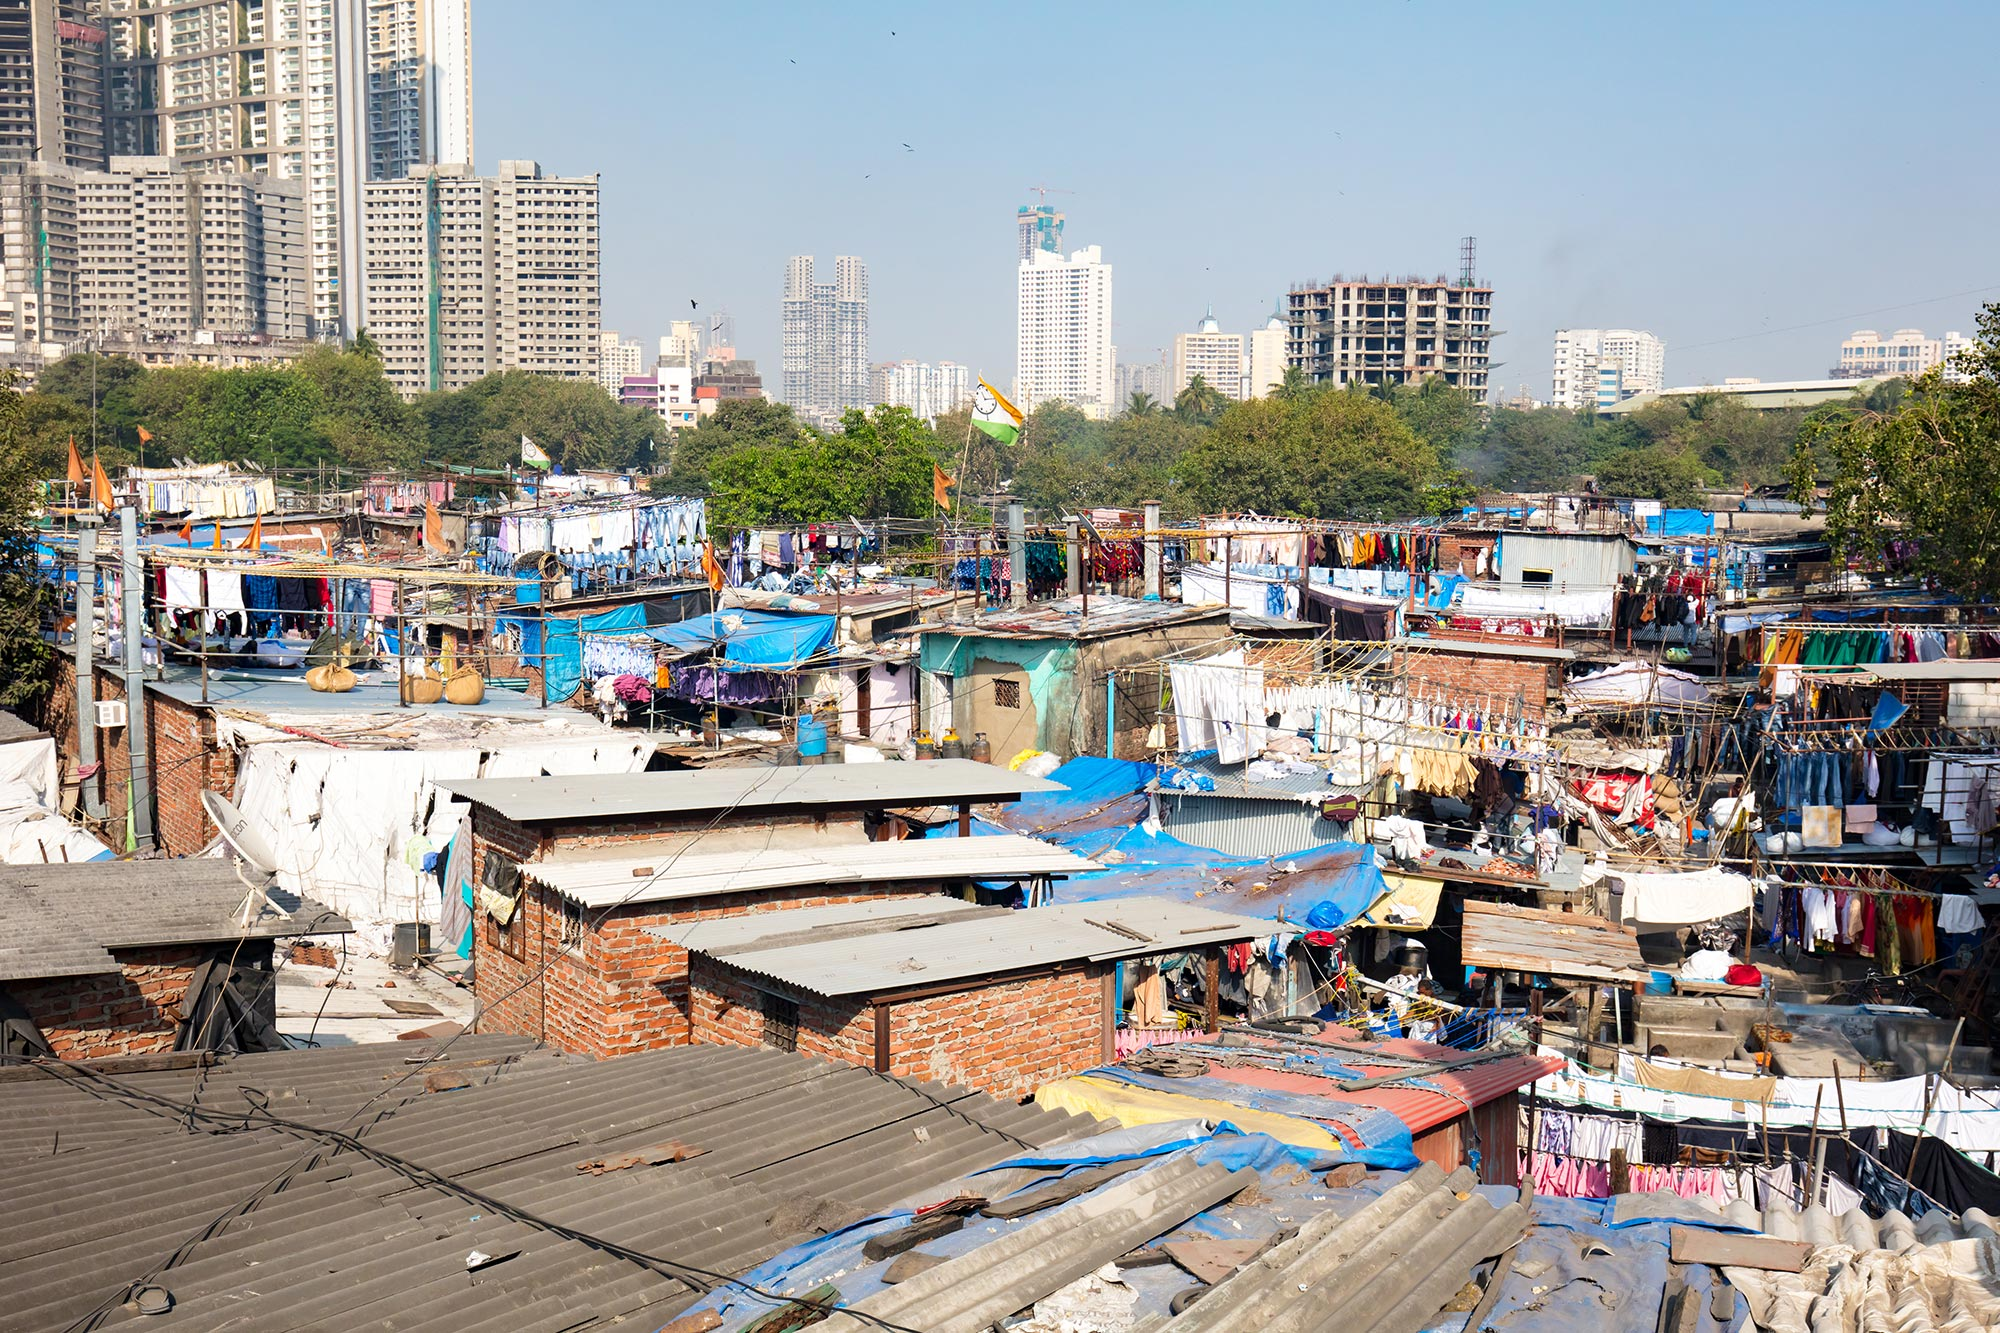 Is Economic Development in Developing Countries an Impediment for Stabilizing Climate Change?